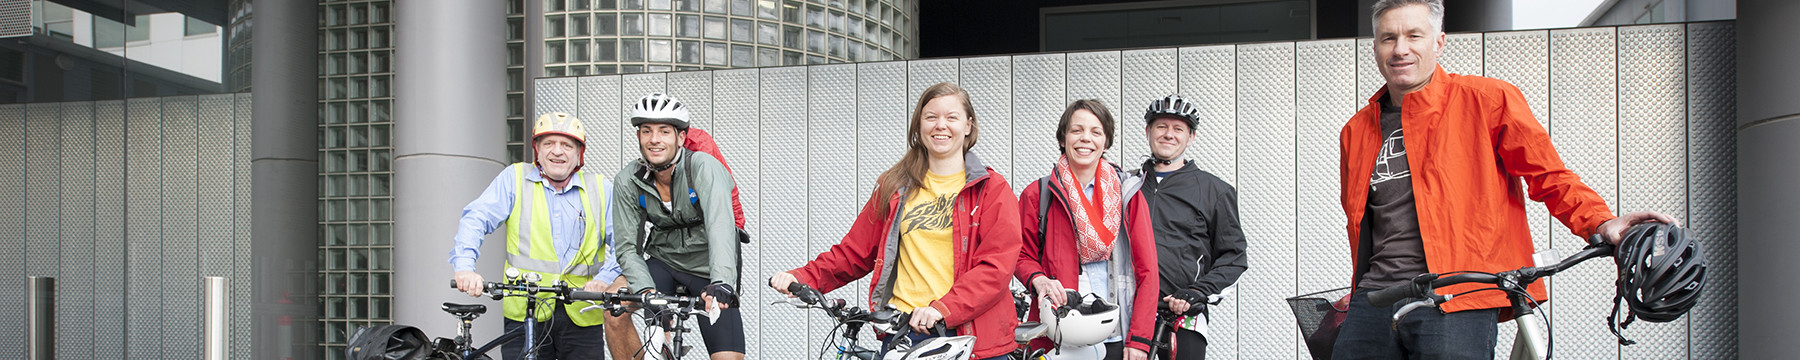 Staff with bicycles